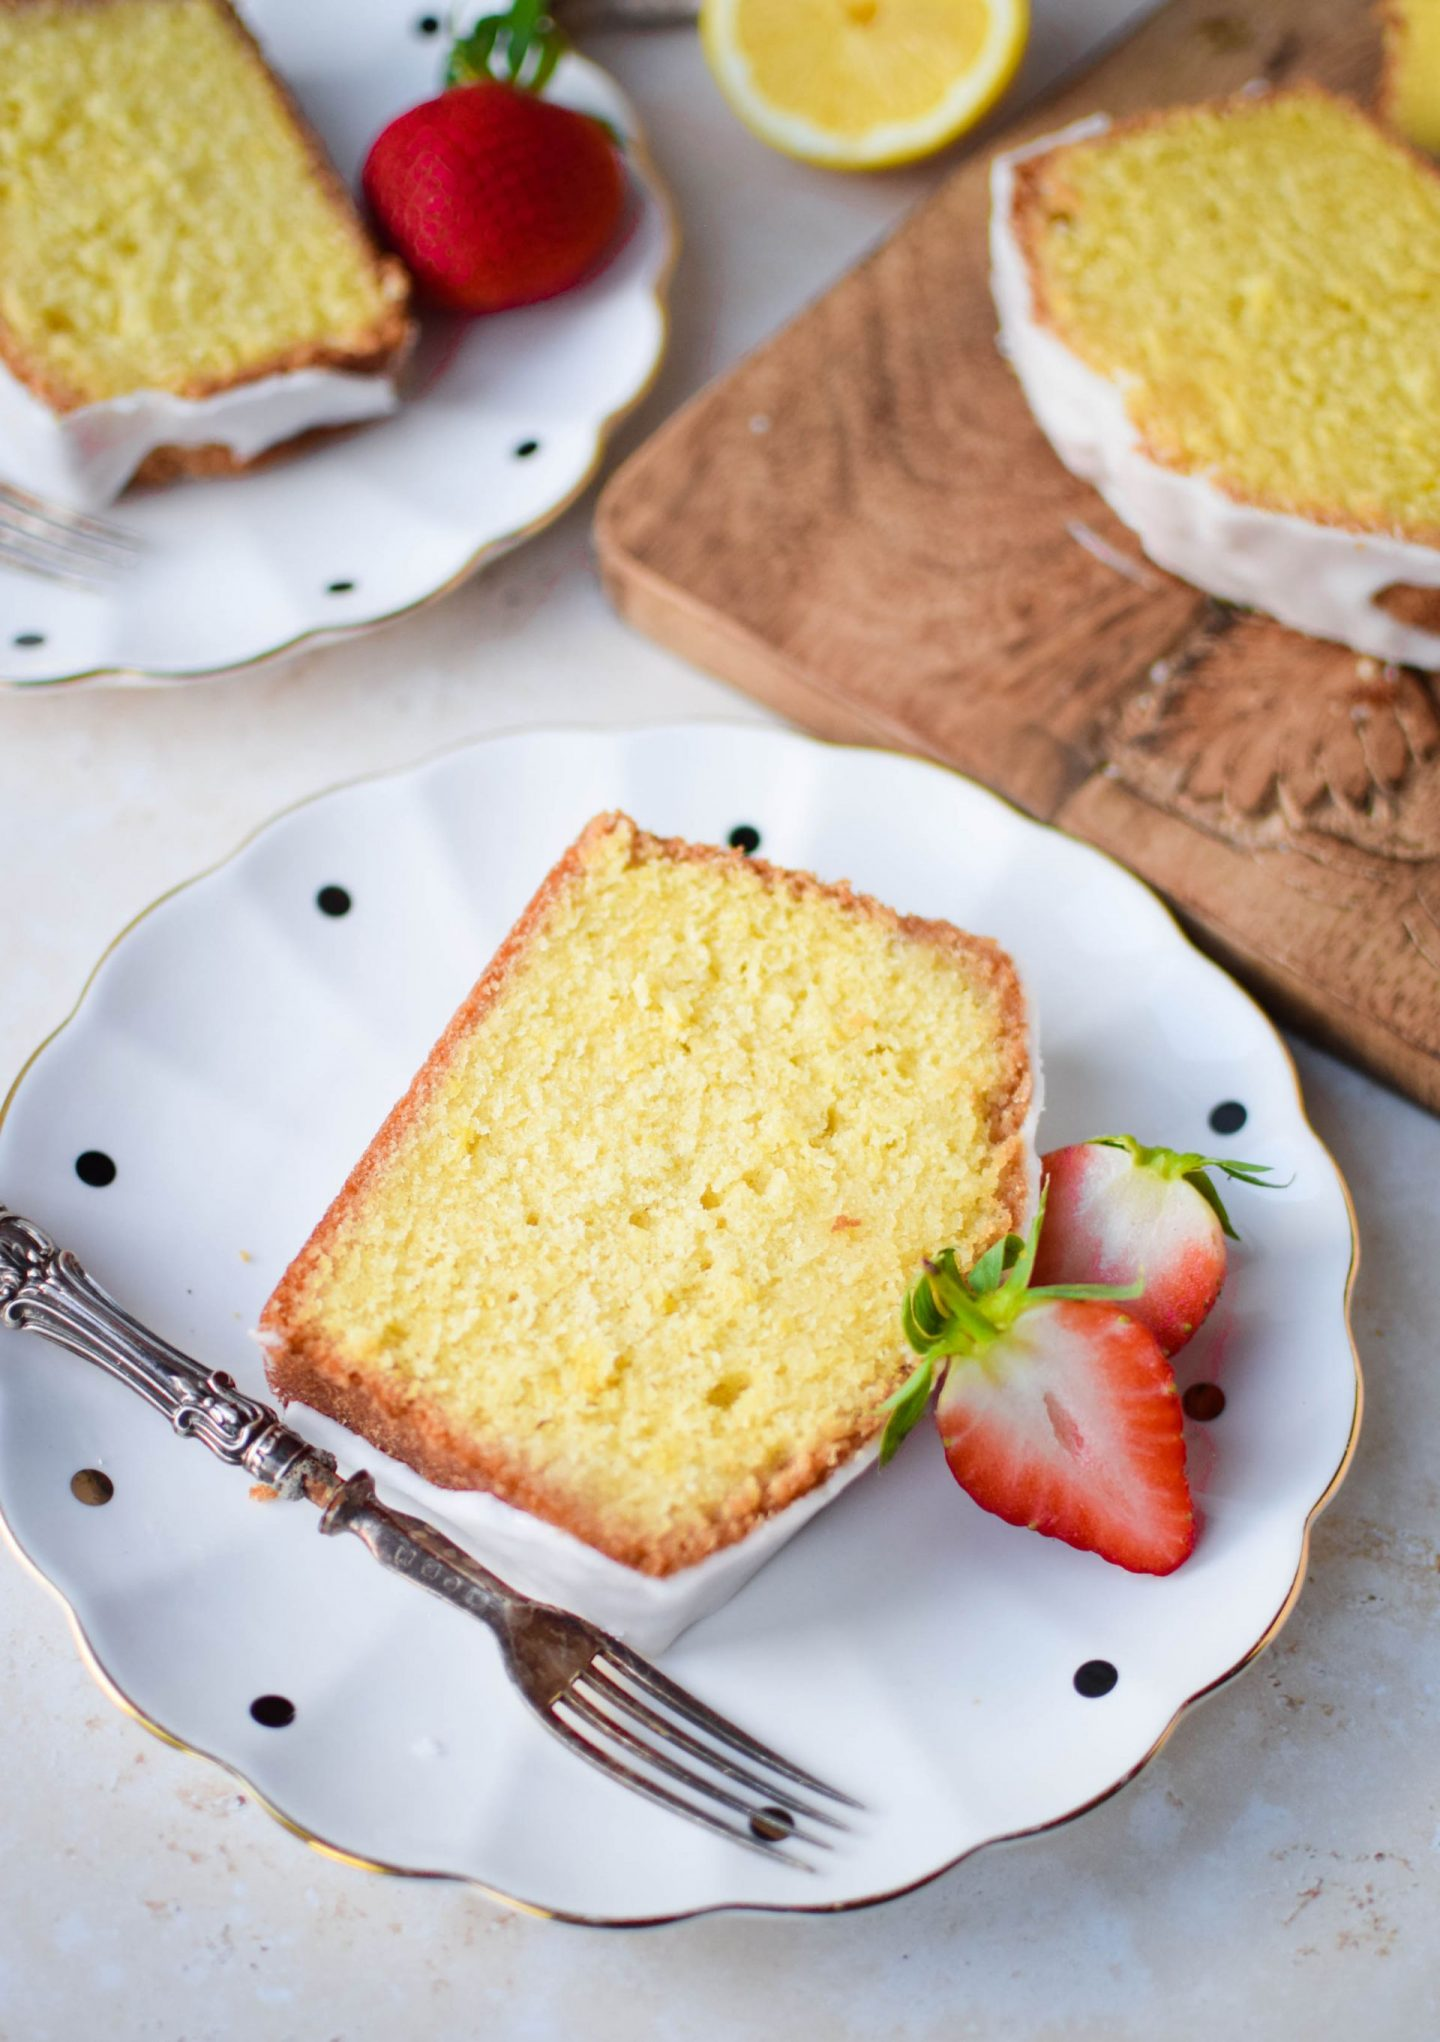 A slice of lemon drizzle cake on a polka dot plate with a halved strawberry.